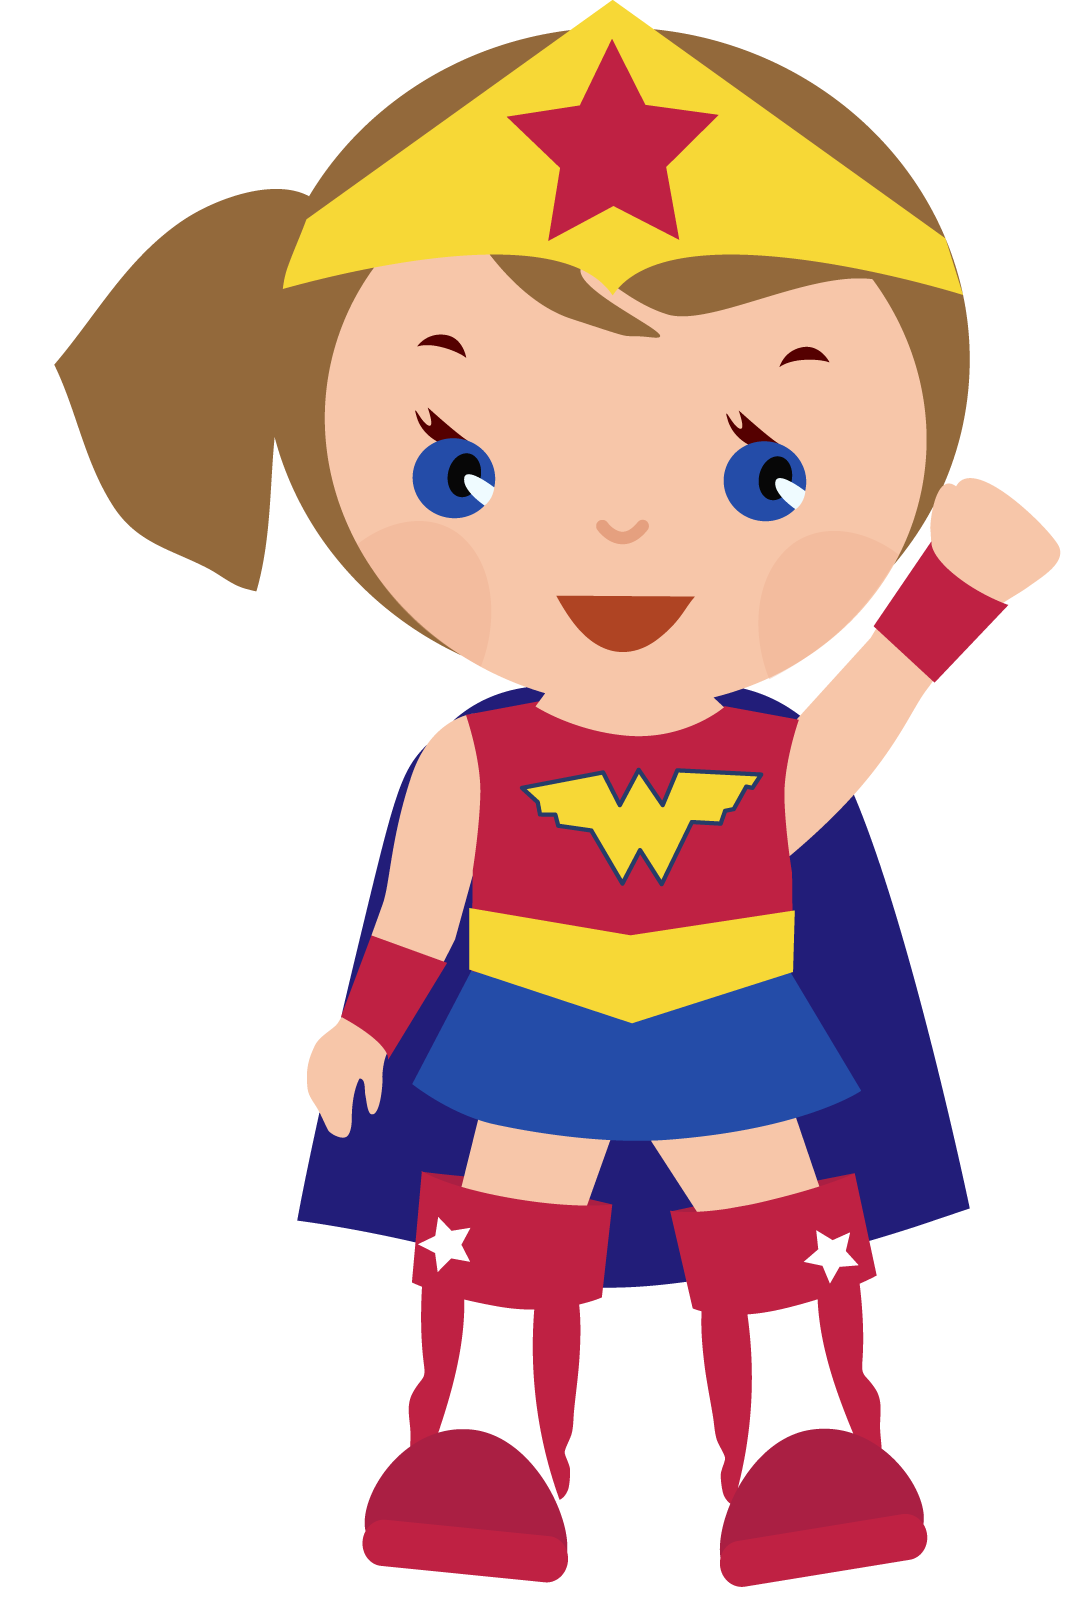 Printables party and clip. Costume clipart superhero costume